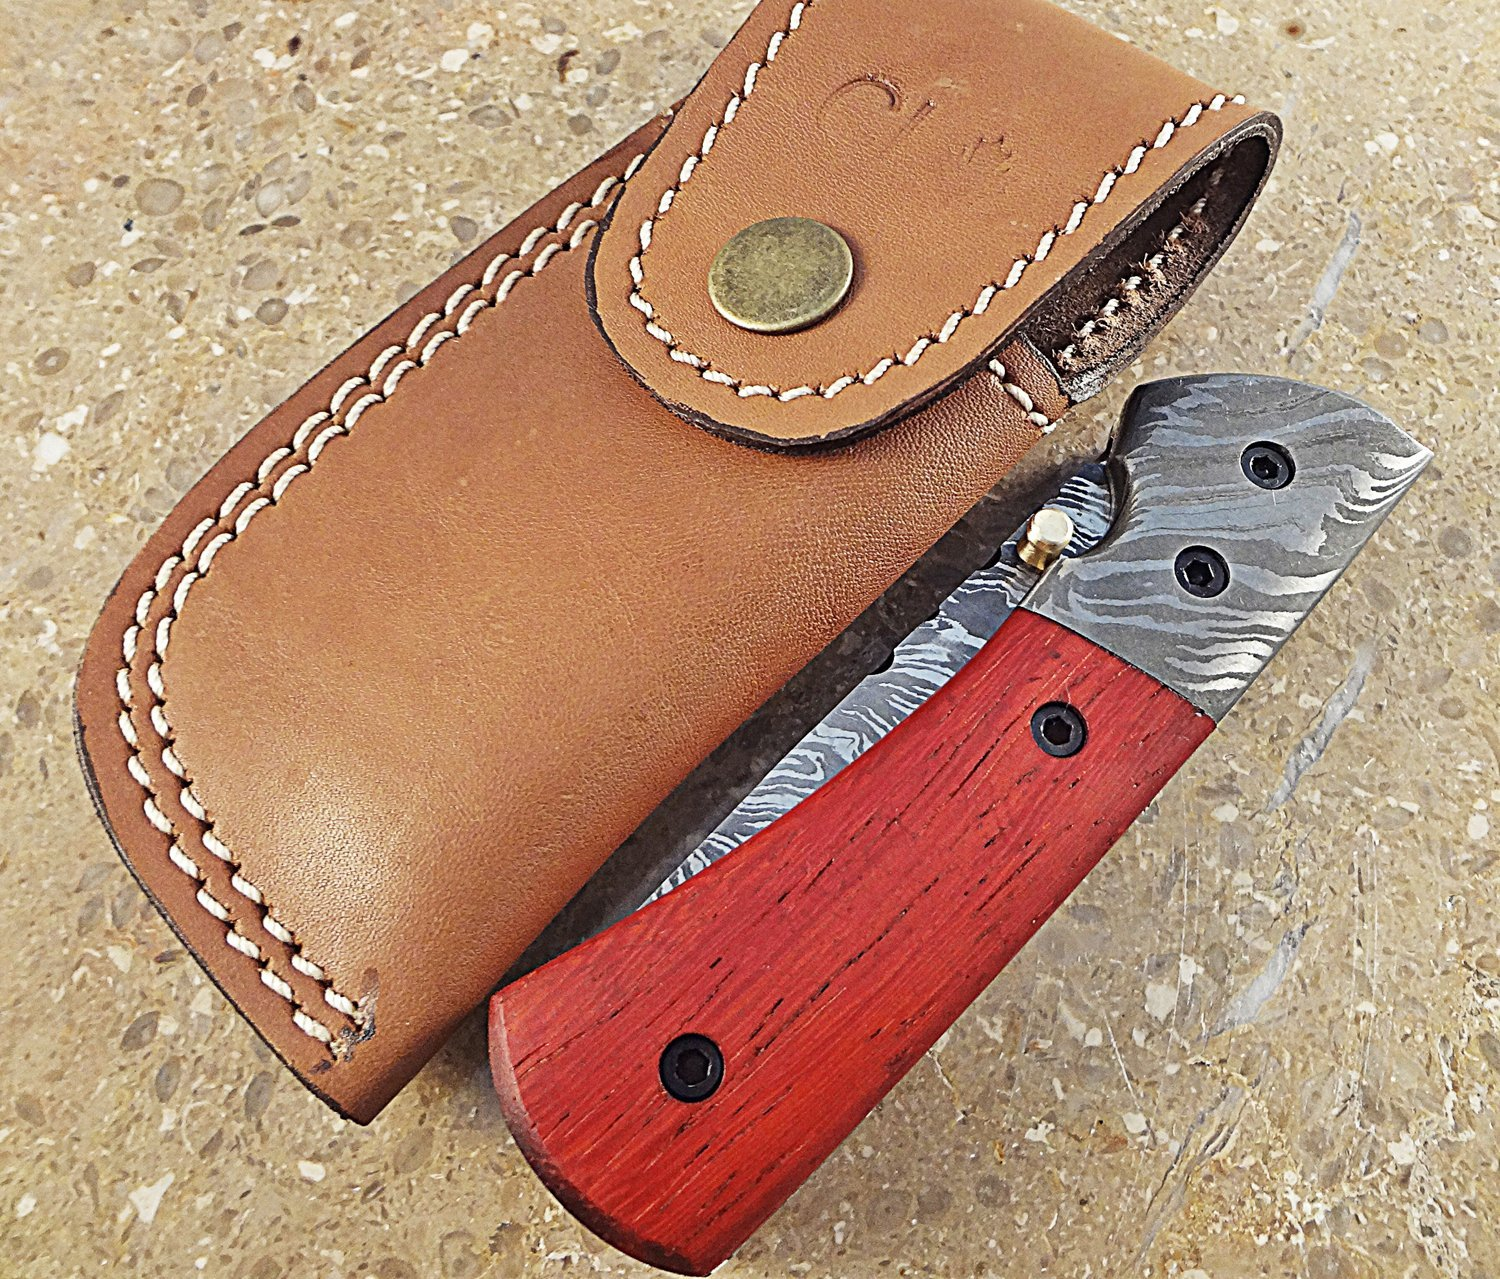 Christmas Gift Offer by ColdLand Knives (LIMITED EDITION) | One-Of-A-Kind Custom Handmade Damascus Steel Folding Pocket Knife Exotic Blood Wood Handle WF14